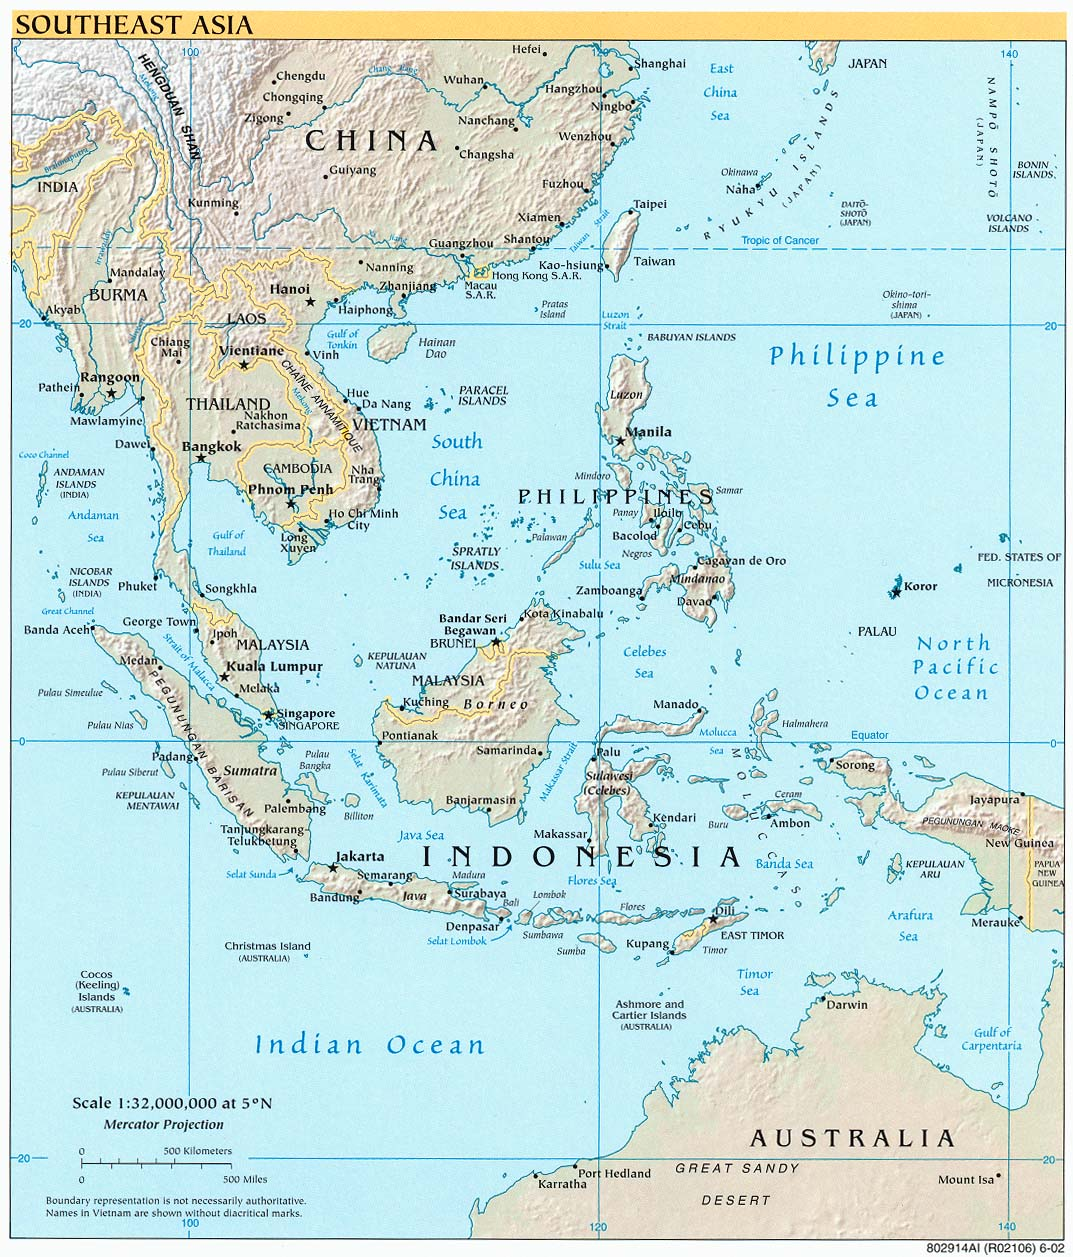 Asia Maps Perry Casta eda Map Collection UT Library Online